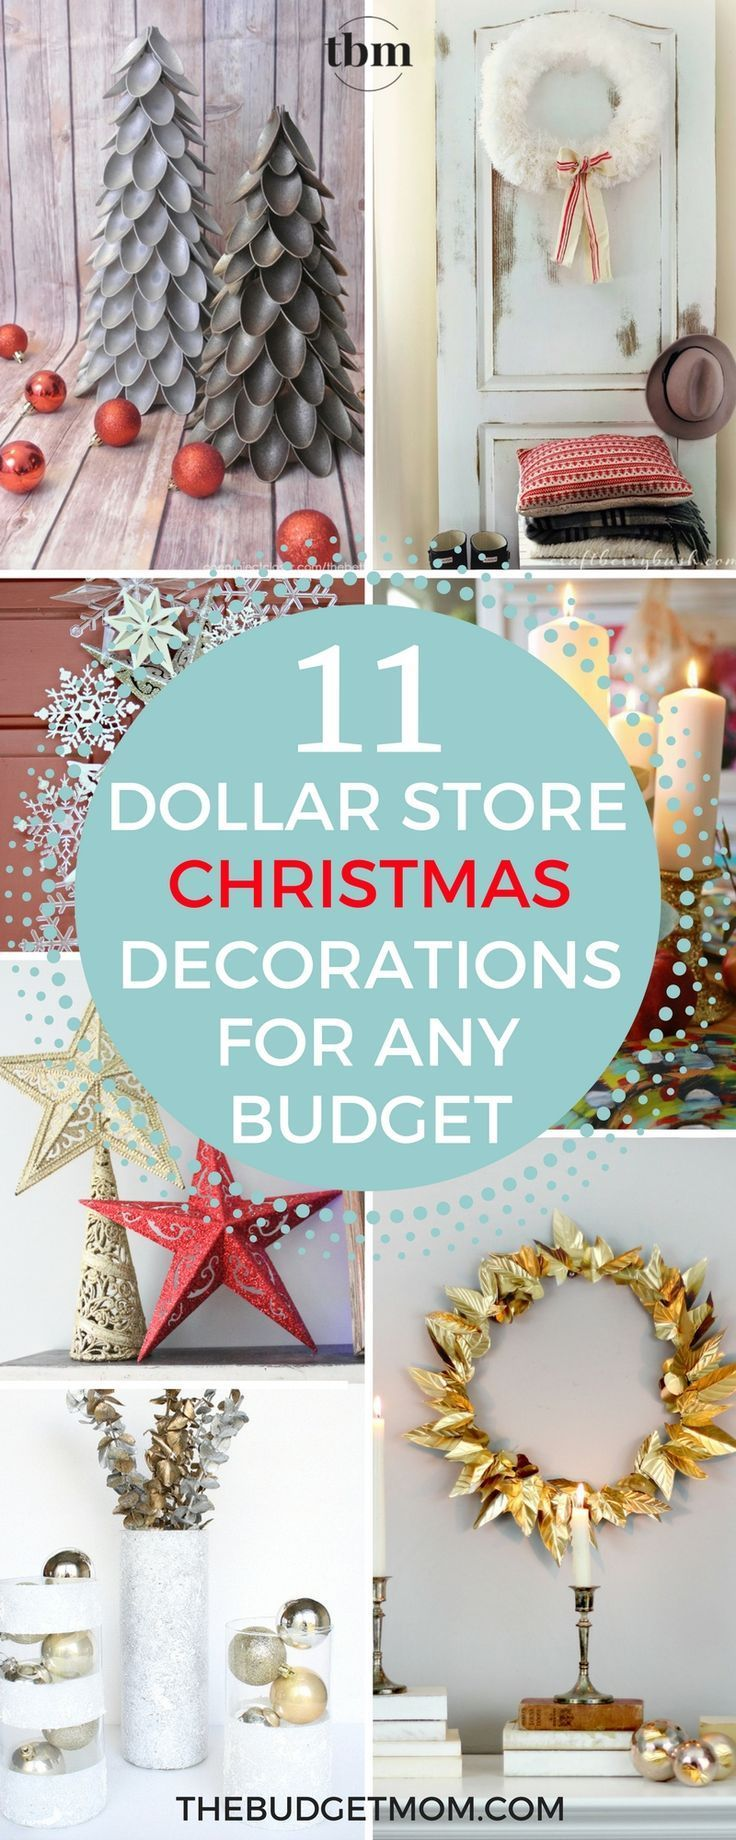 Uncategorized Decorate For Christmas On A Budget 25 unique cheap christmas decorations ideas on pinterest 11 glamorous dollar store for any budget